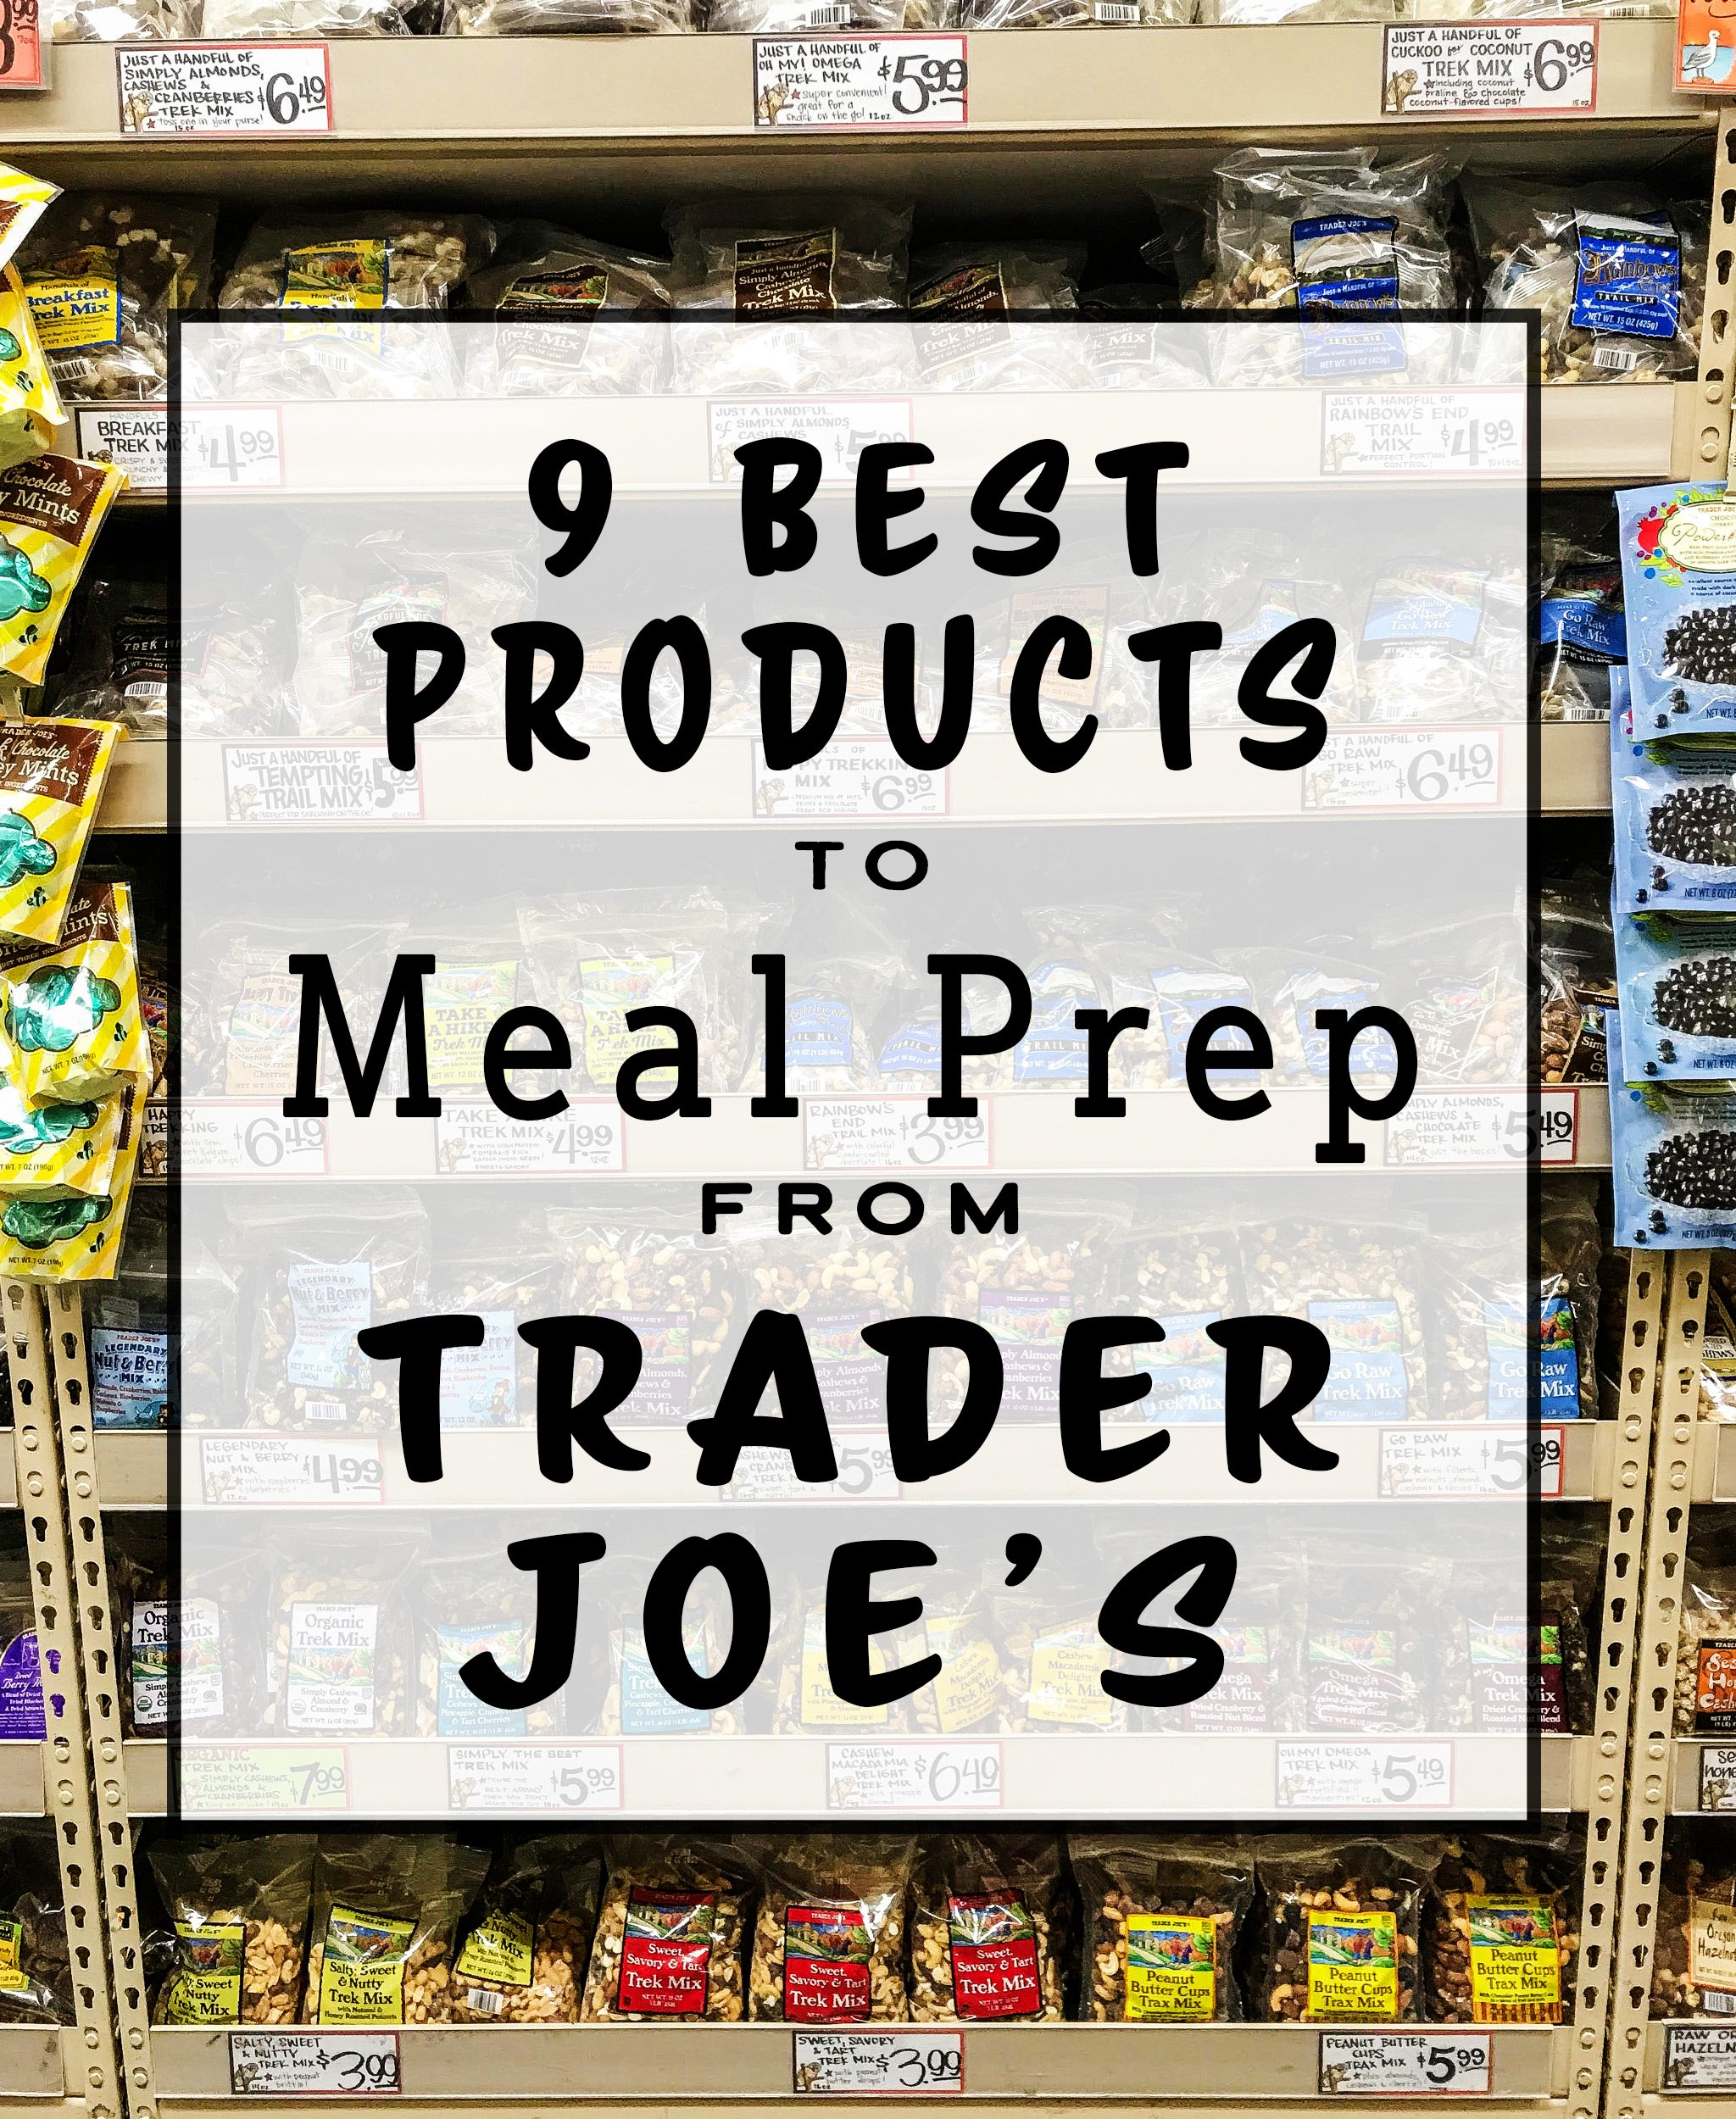 Here are the 9 Best Products to Meal Prep from Trader Joe's, plus meal ideas to give you a great starting place on your weekly meal plan!